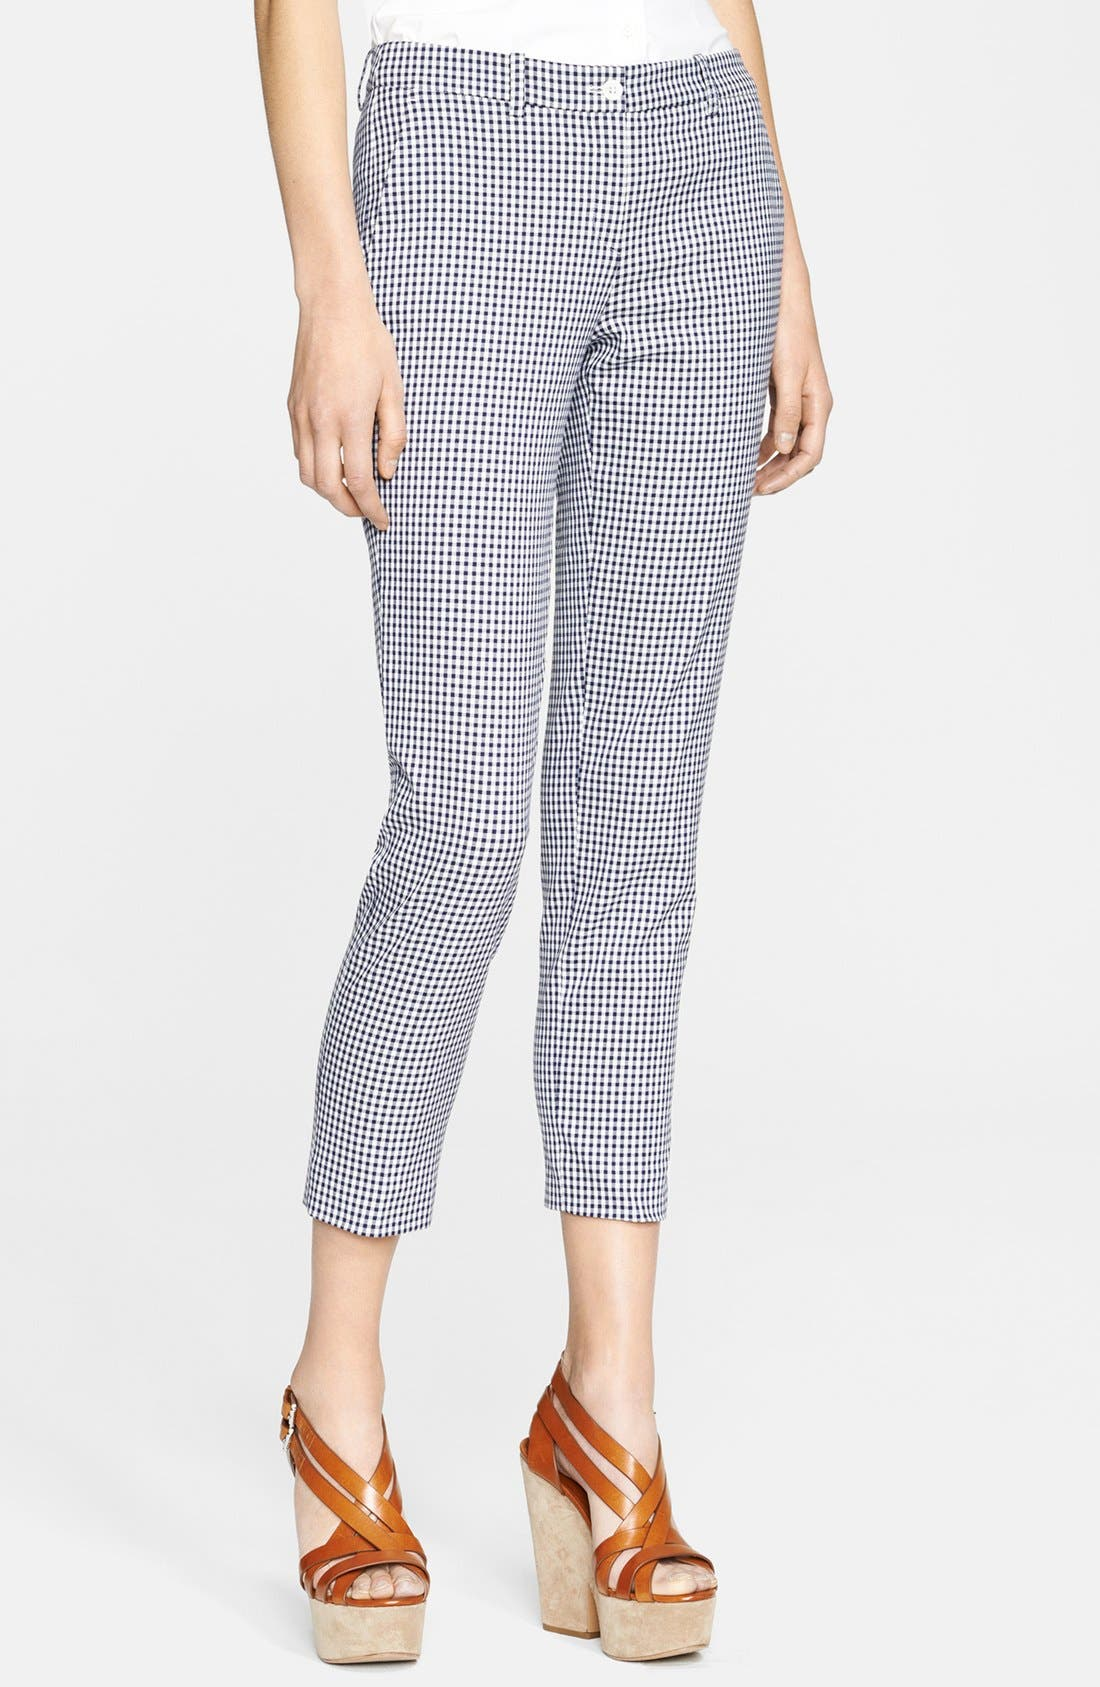 Main Image - Michael Kors 'Samantha' Gingham Pants